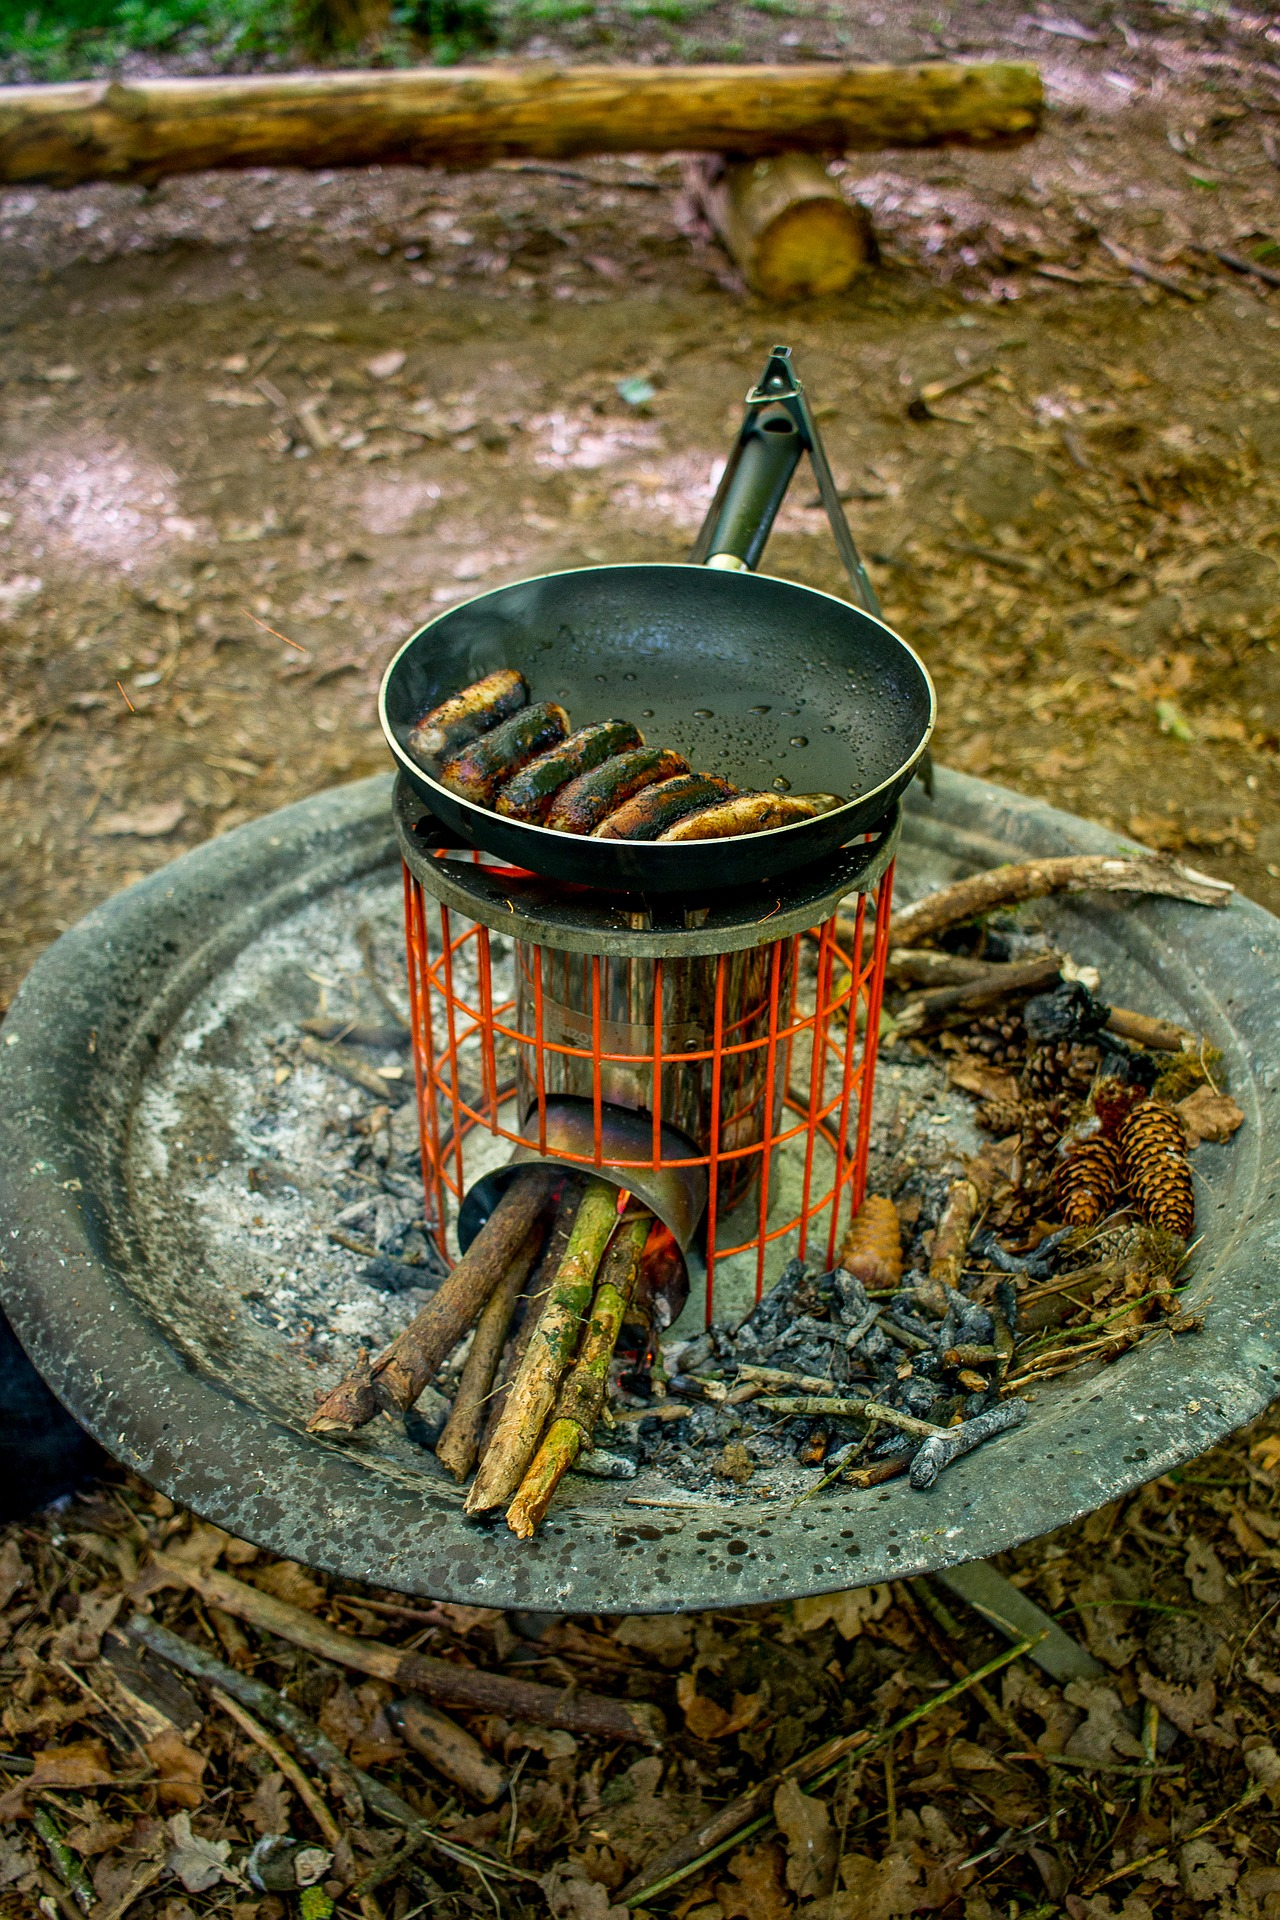 Most camp stoves are for outside use only.